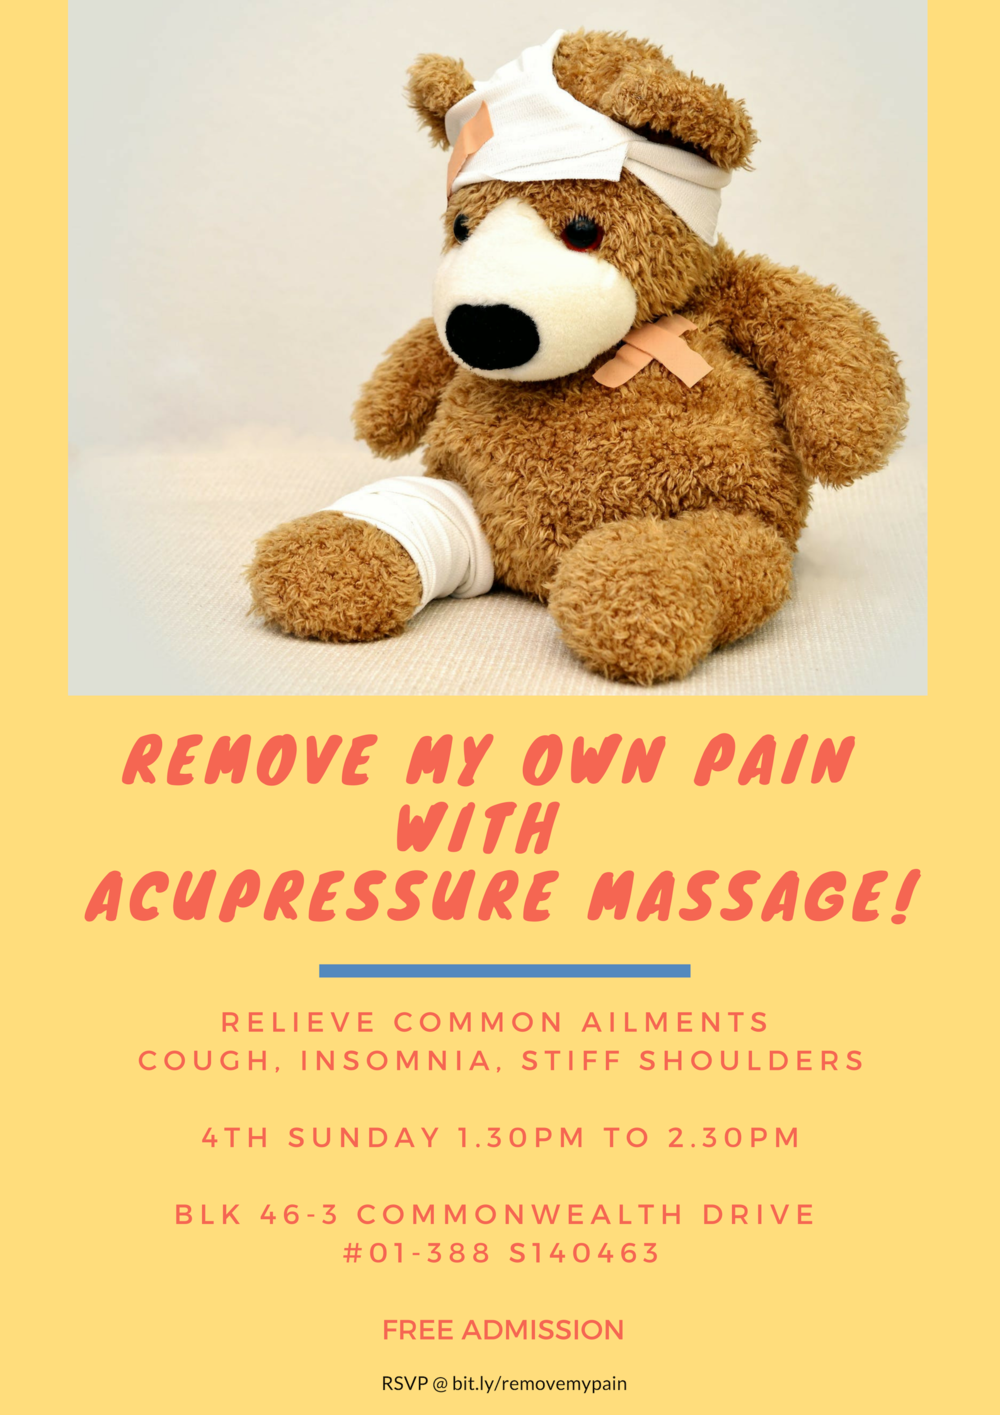 Remove My Own Pain with Acupressure Massage! - 24 Mar 2019Free AdmissionCheck out photos at bit.ly/removeownpainphotosRegister at bit.ly/removemypain